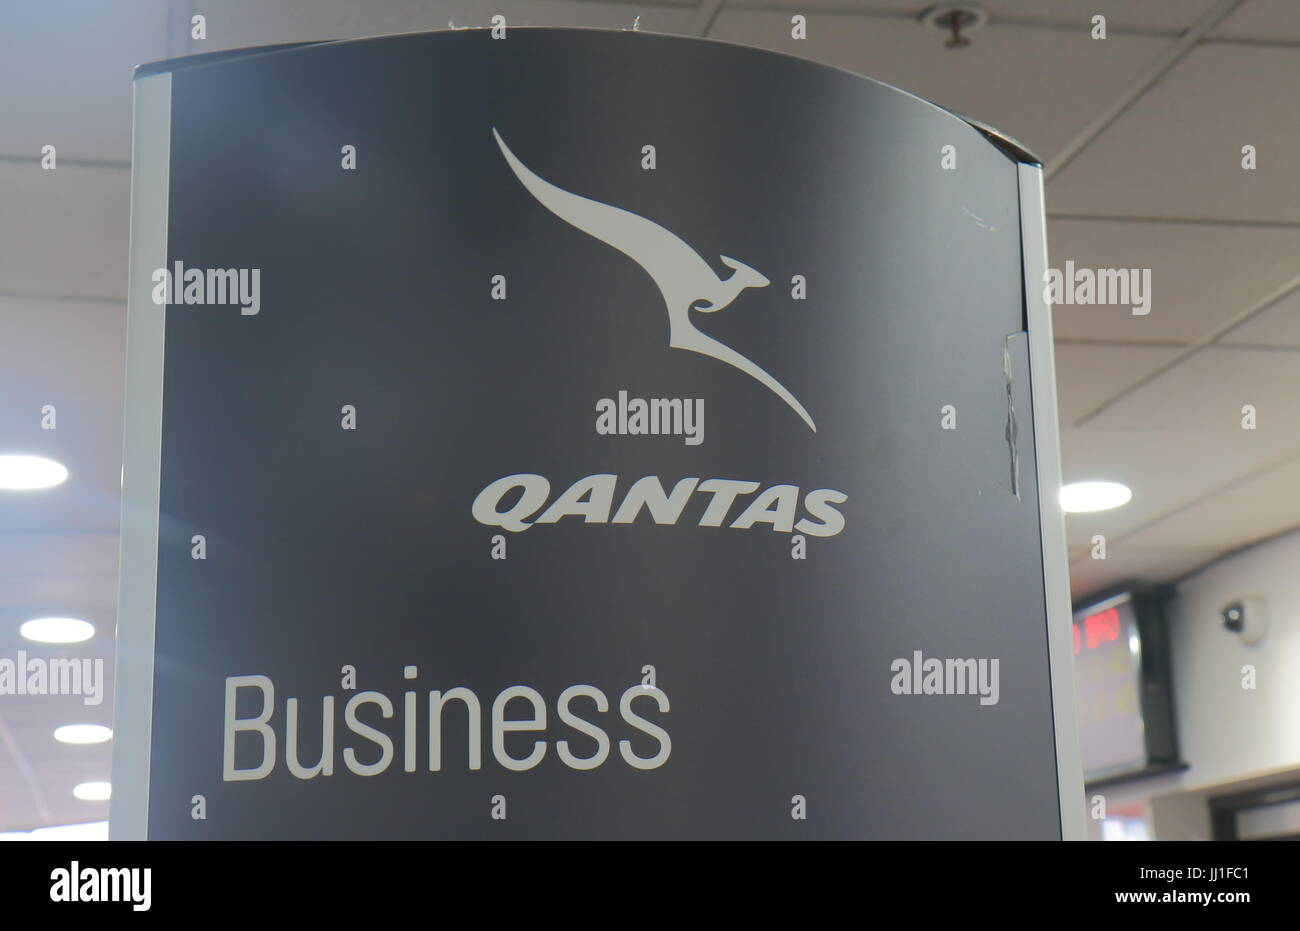 Qantas business class check in sign at Melbourne airport Australia. - Stock Image